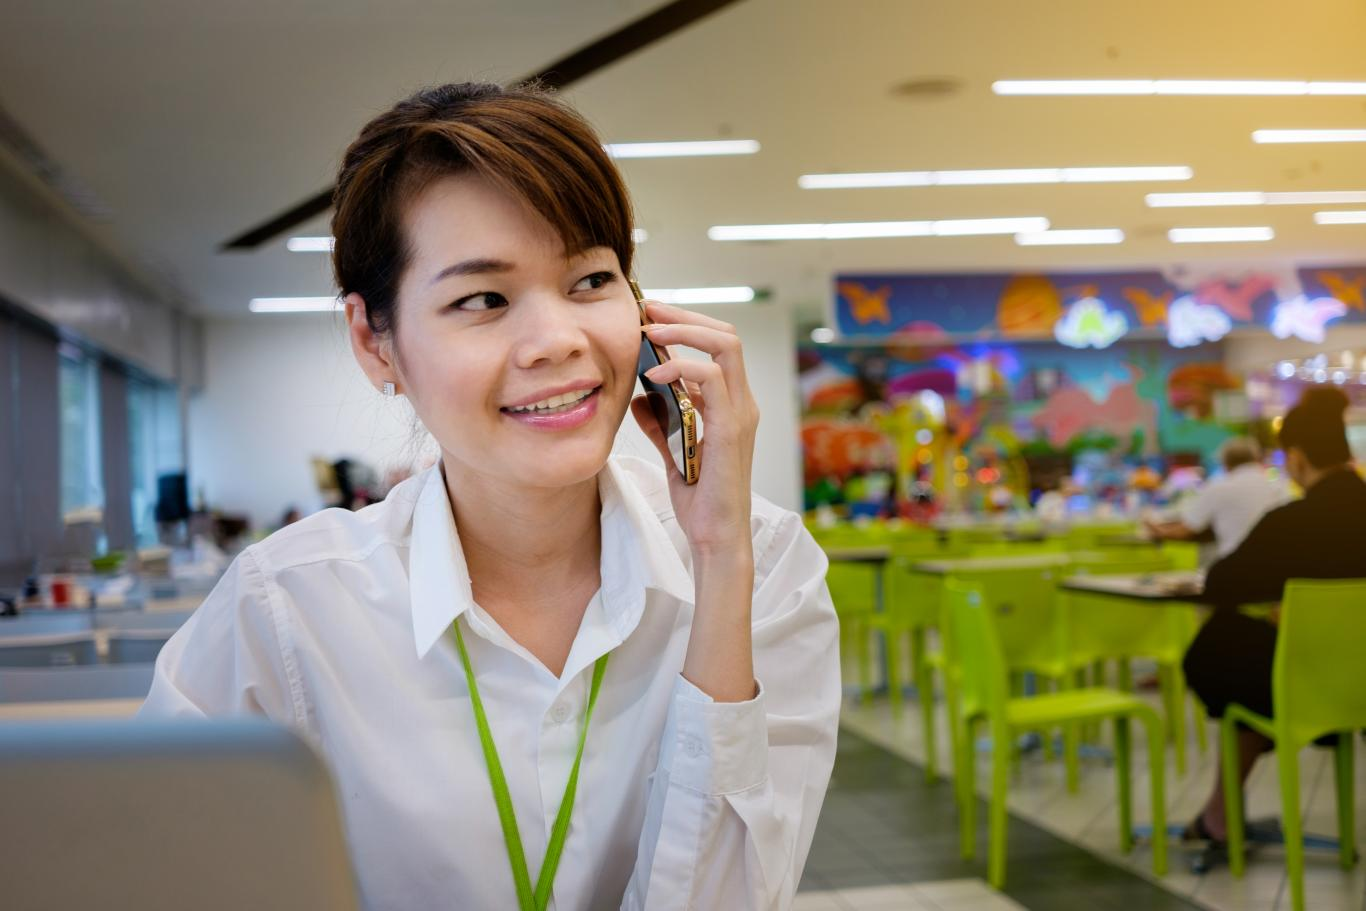 Smiling-Asian-Woman-Calling-on-Phone-and-Working-on-Laptop-at-office